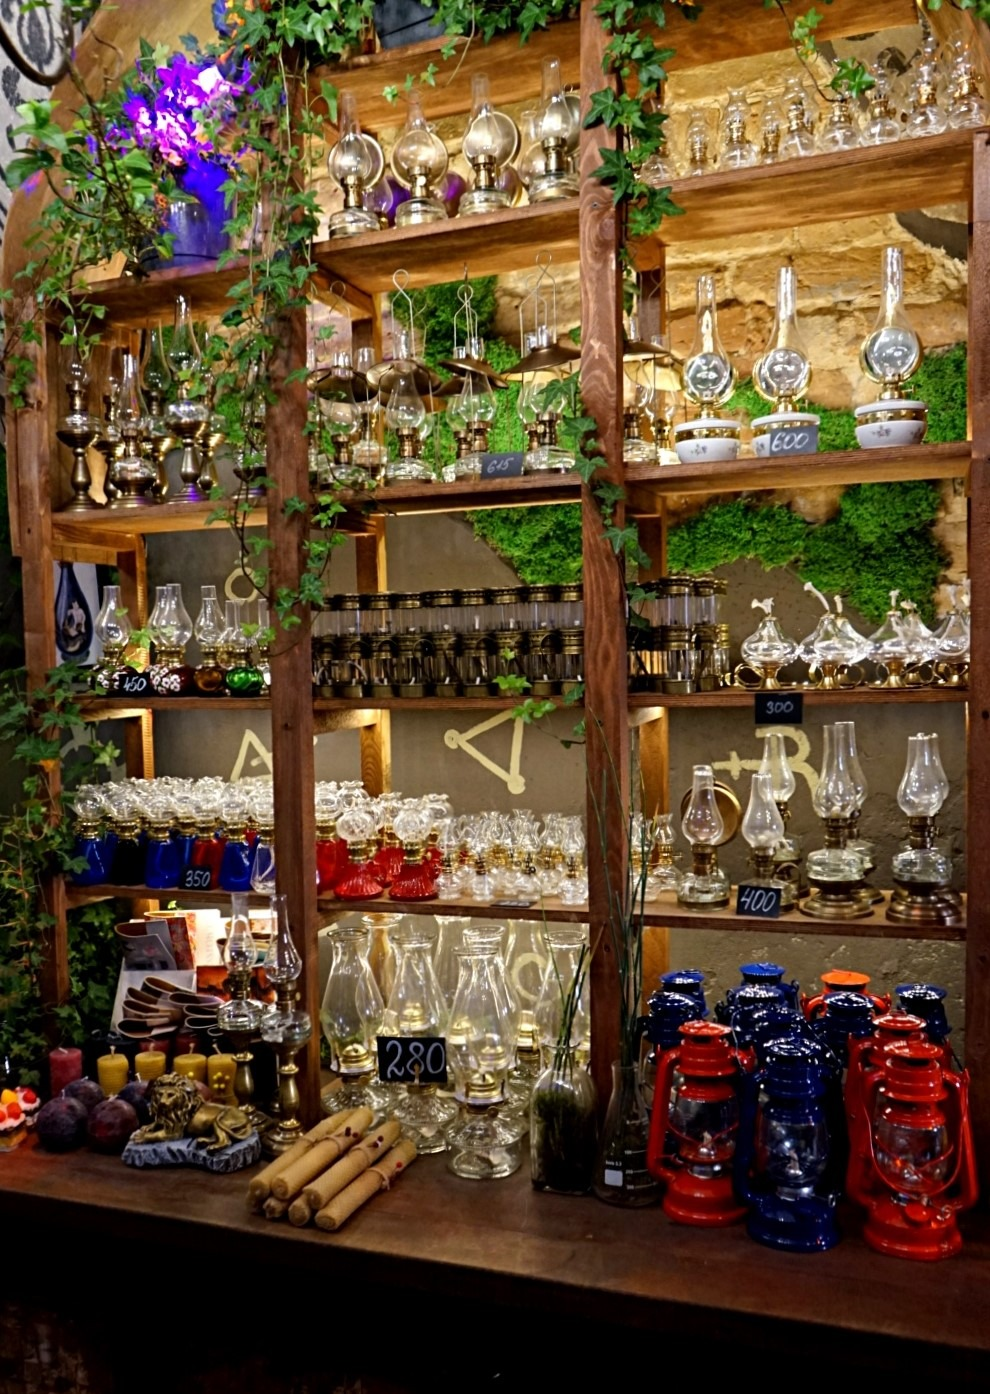 The souvenir store at Galician Alchemy